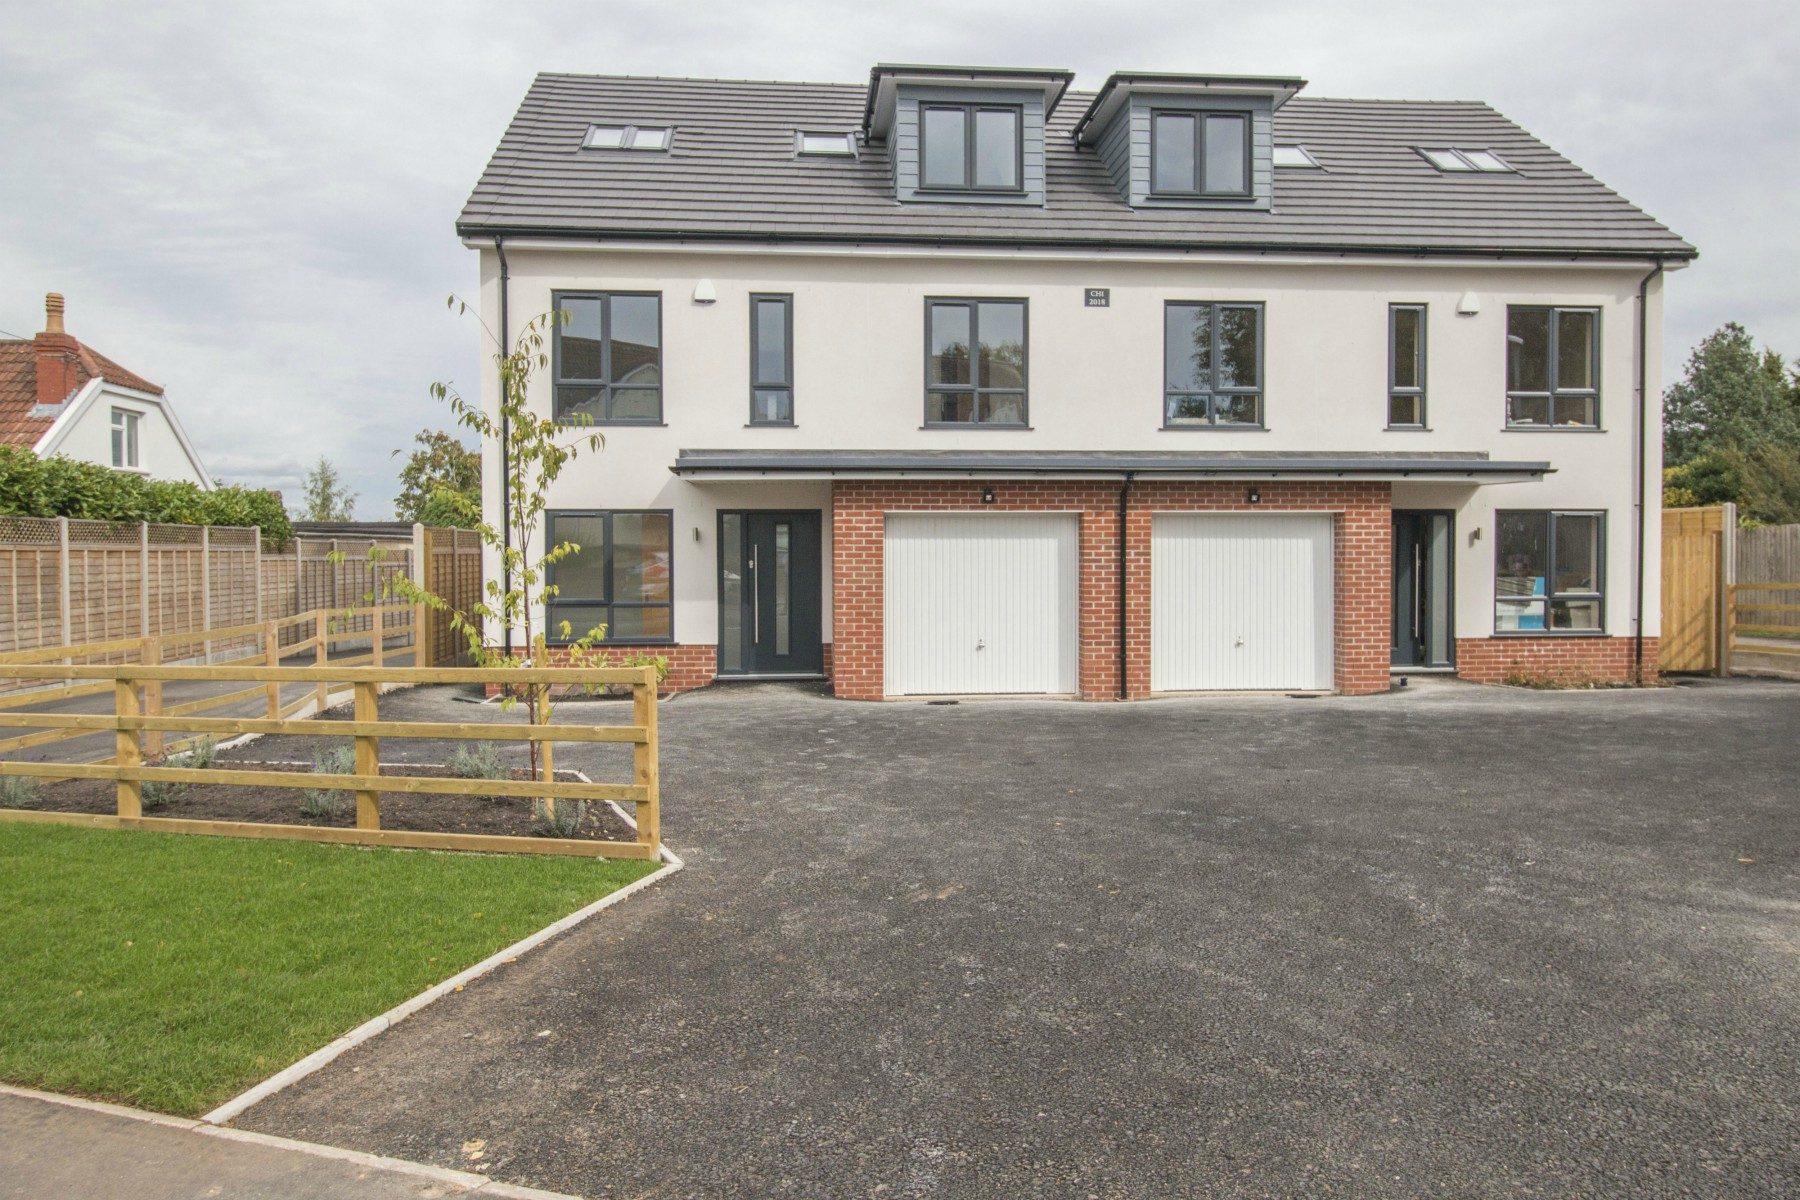 How to find the right housebuilding sites